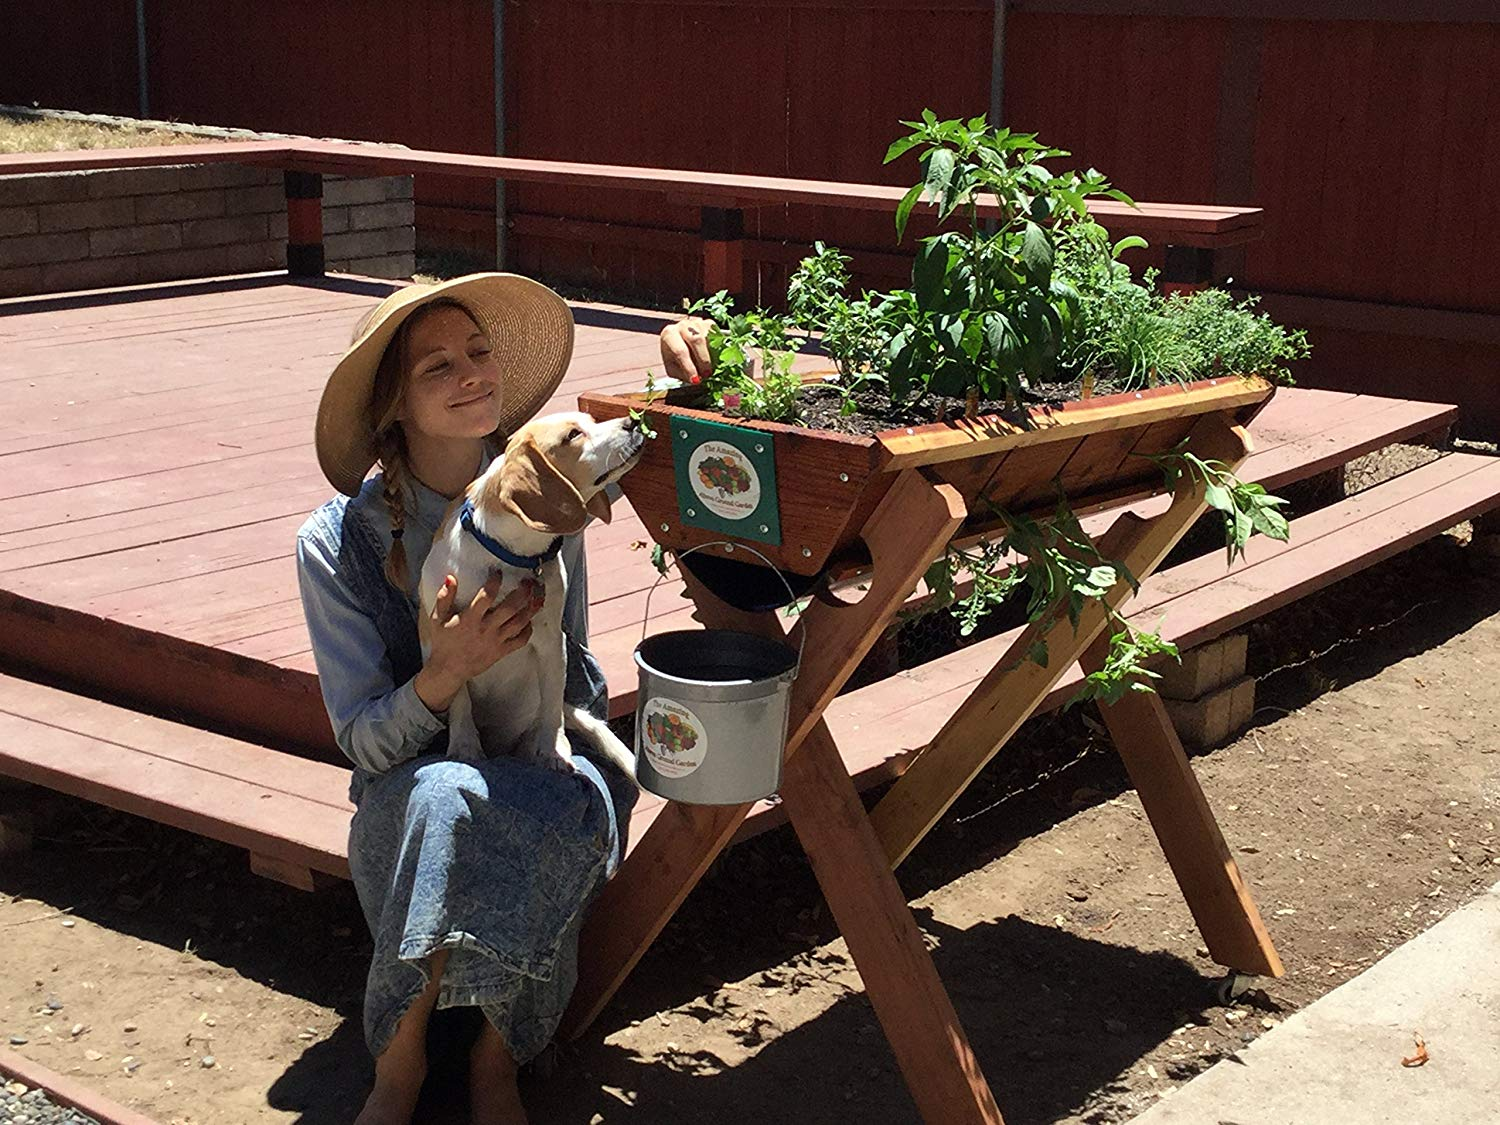 4' Urban Farmer Redwood Garden Planter grows 20 plants Herbs,Vegetables,Flowers, with the Reclaimed water Conservation System